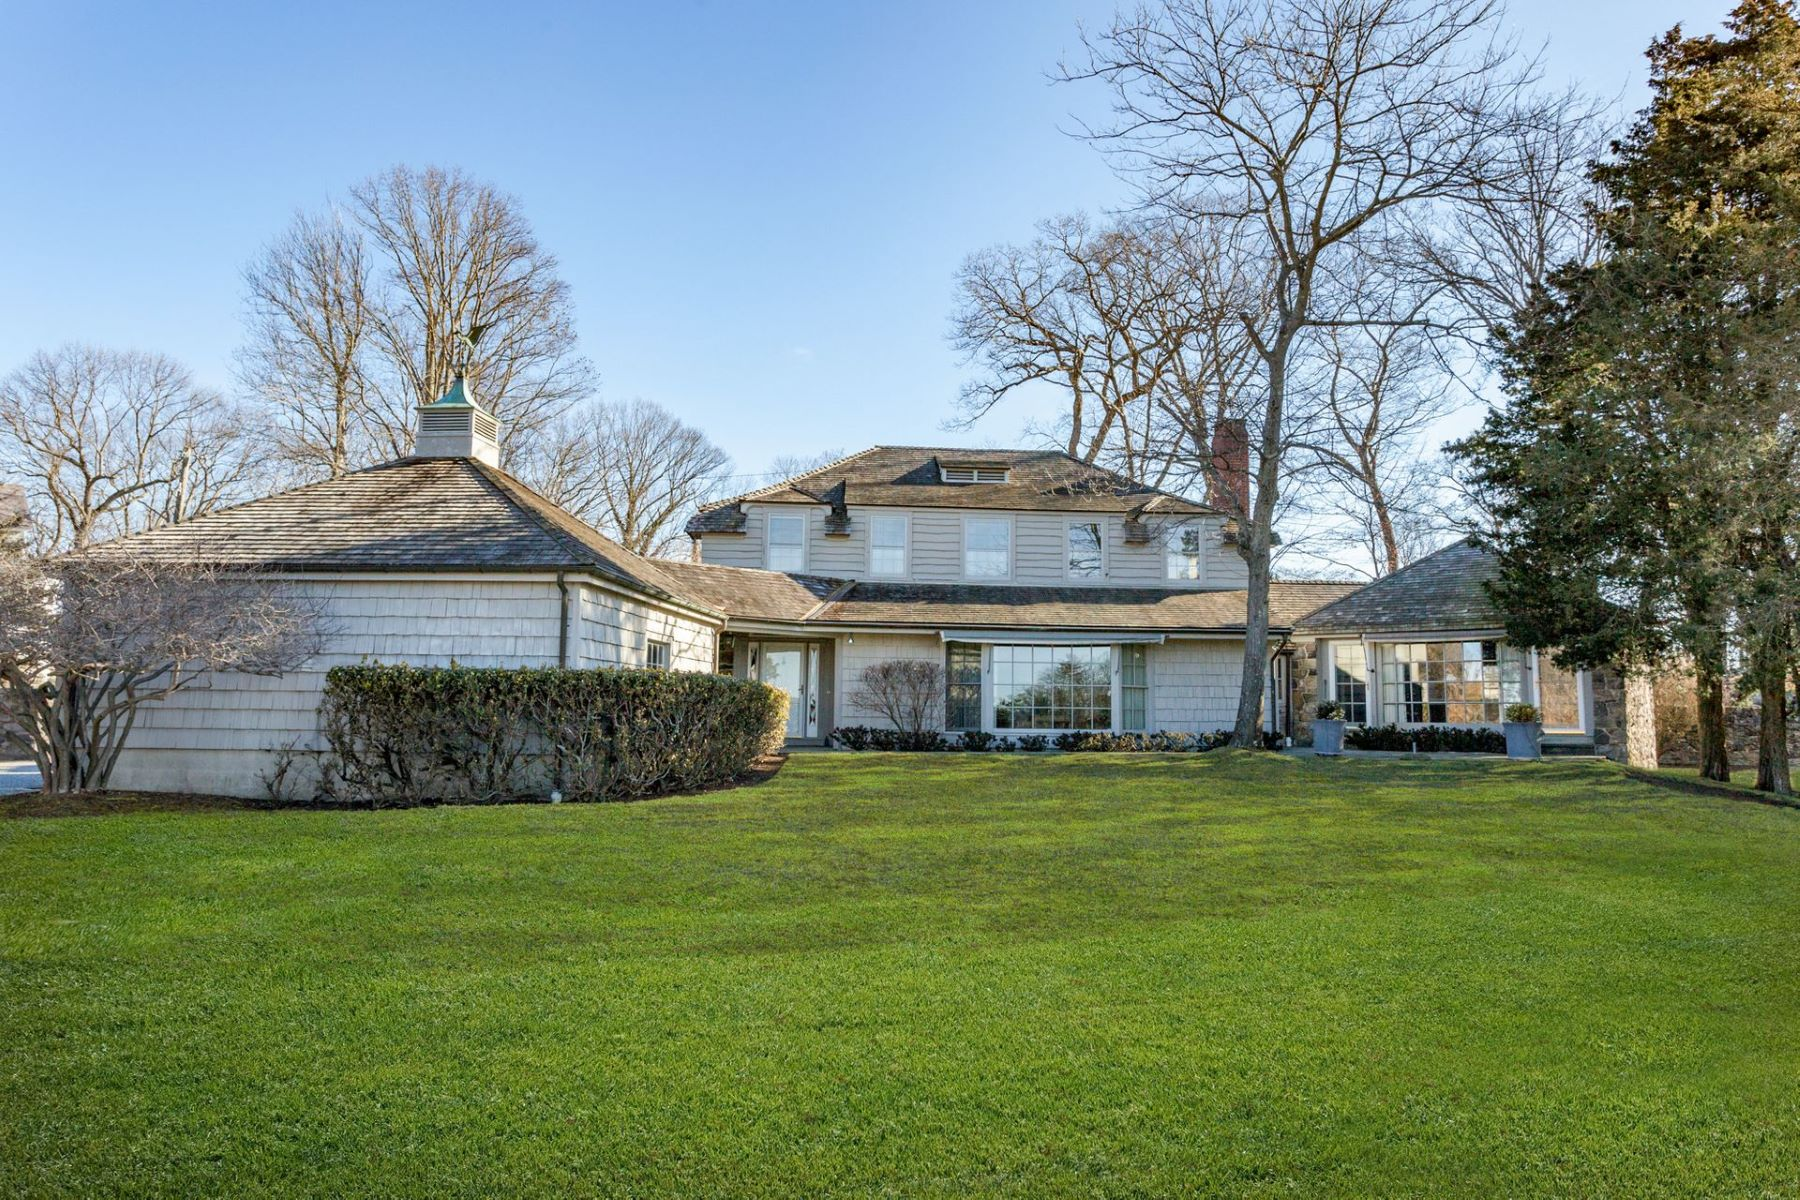 Single Family Homes for Sale at 29 Tokeneke Trail Darien, Connecticut 06820 United States